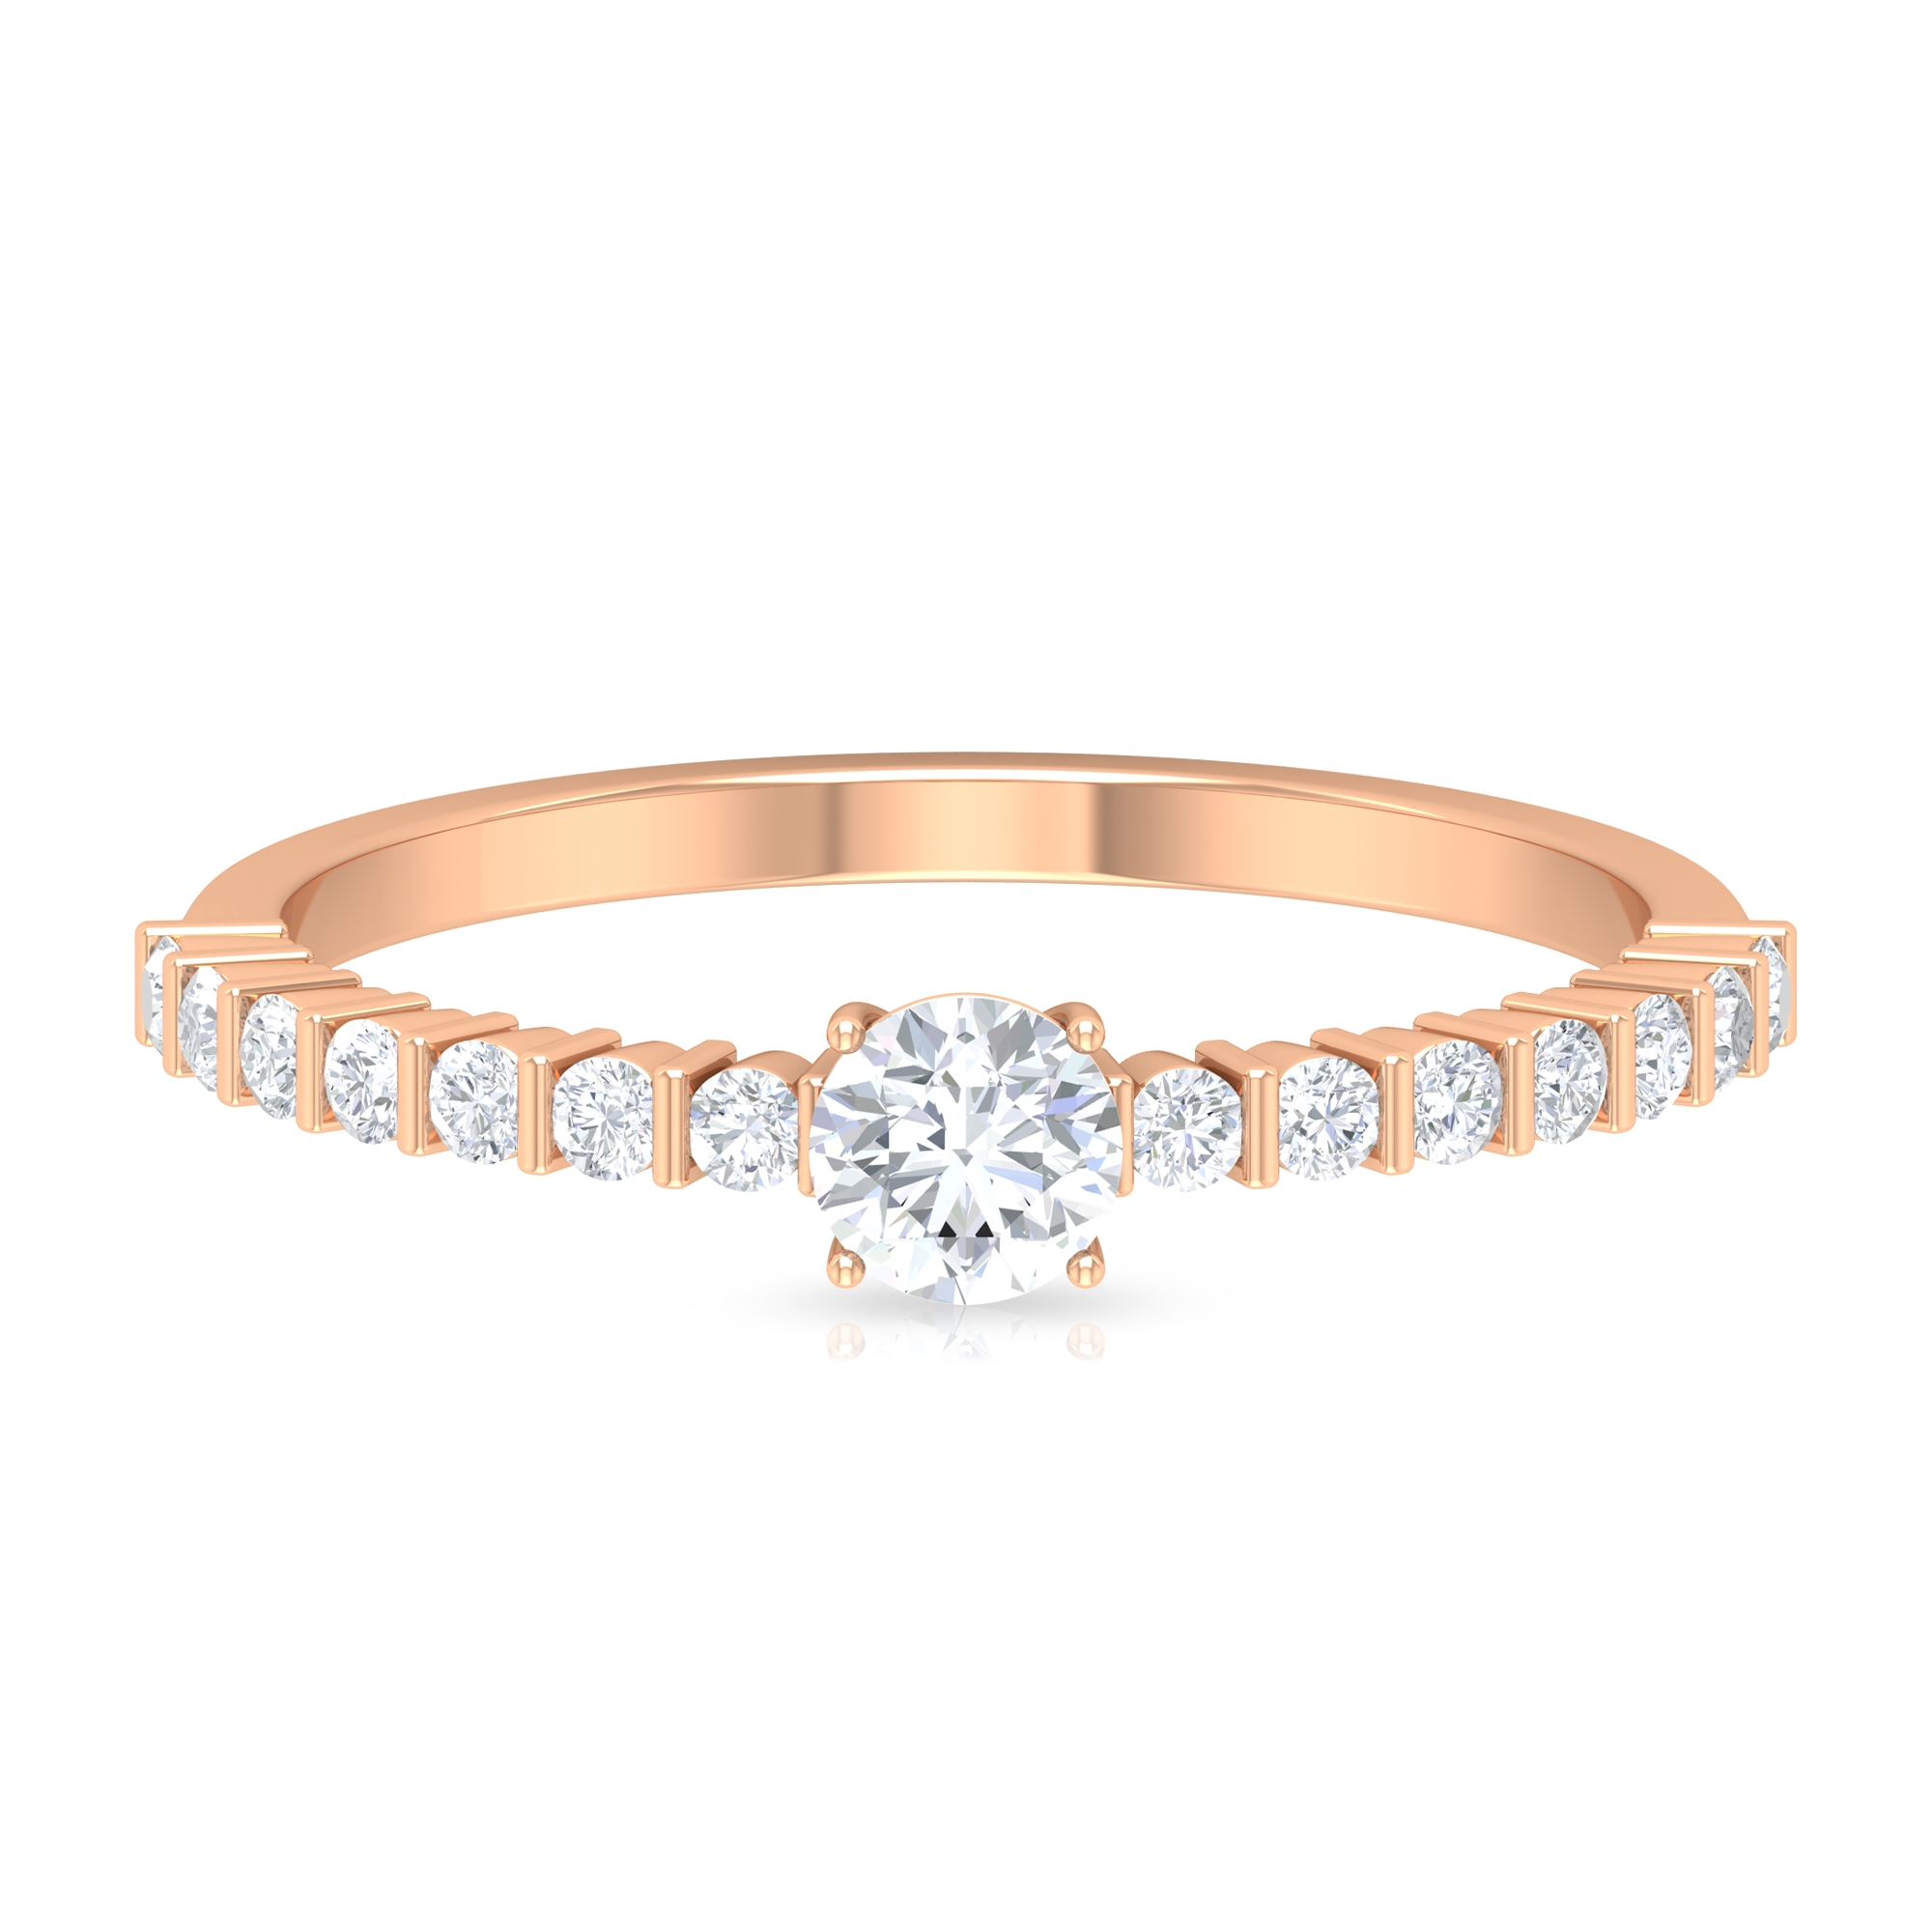 April Birthstone 1/2 CT Four Prong Set Solitaire Diamond Ring with Bar Set Side Stones